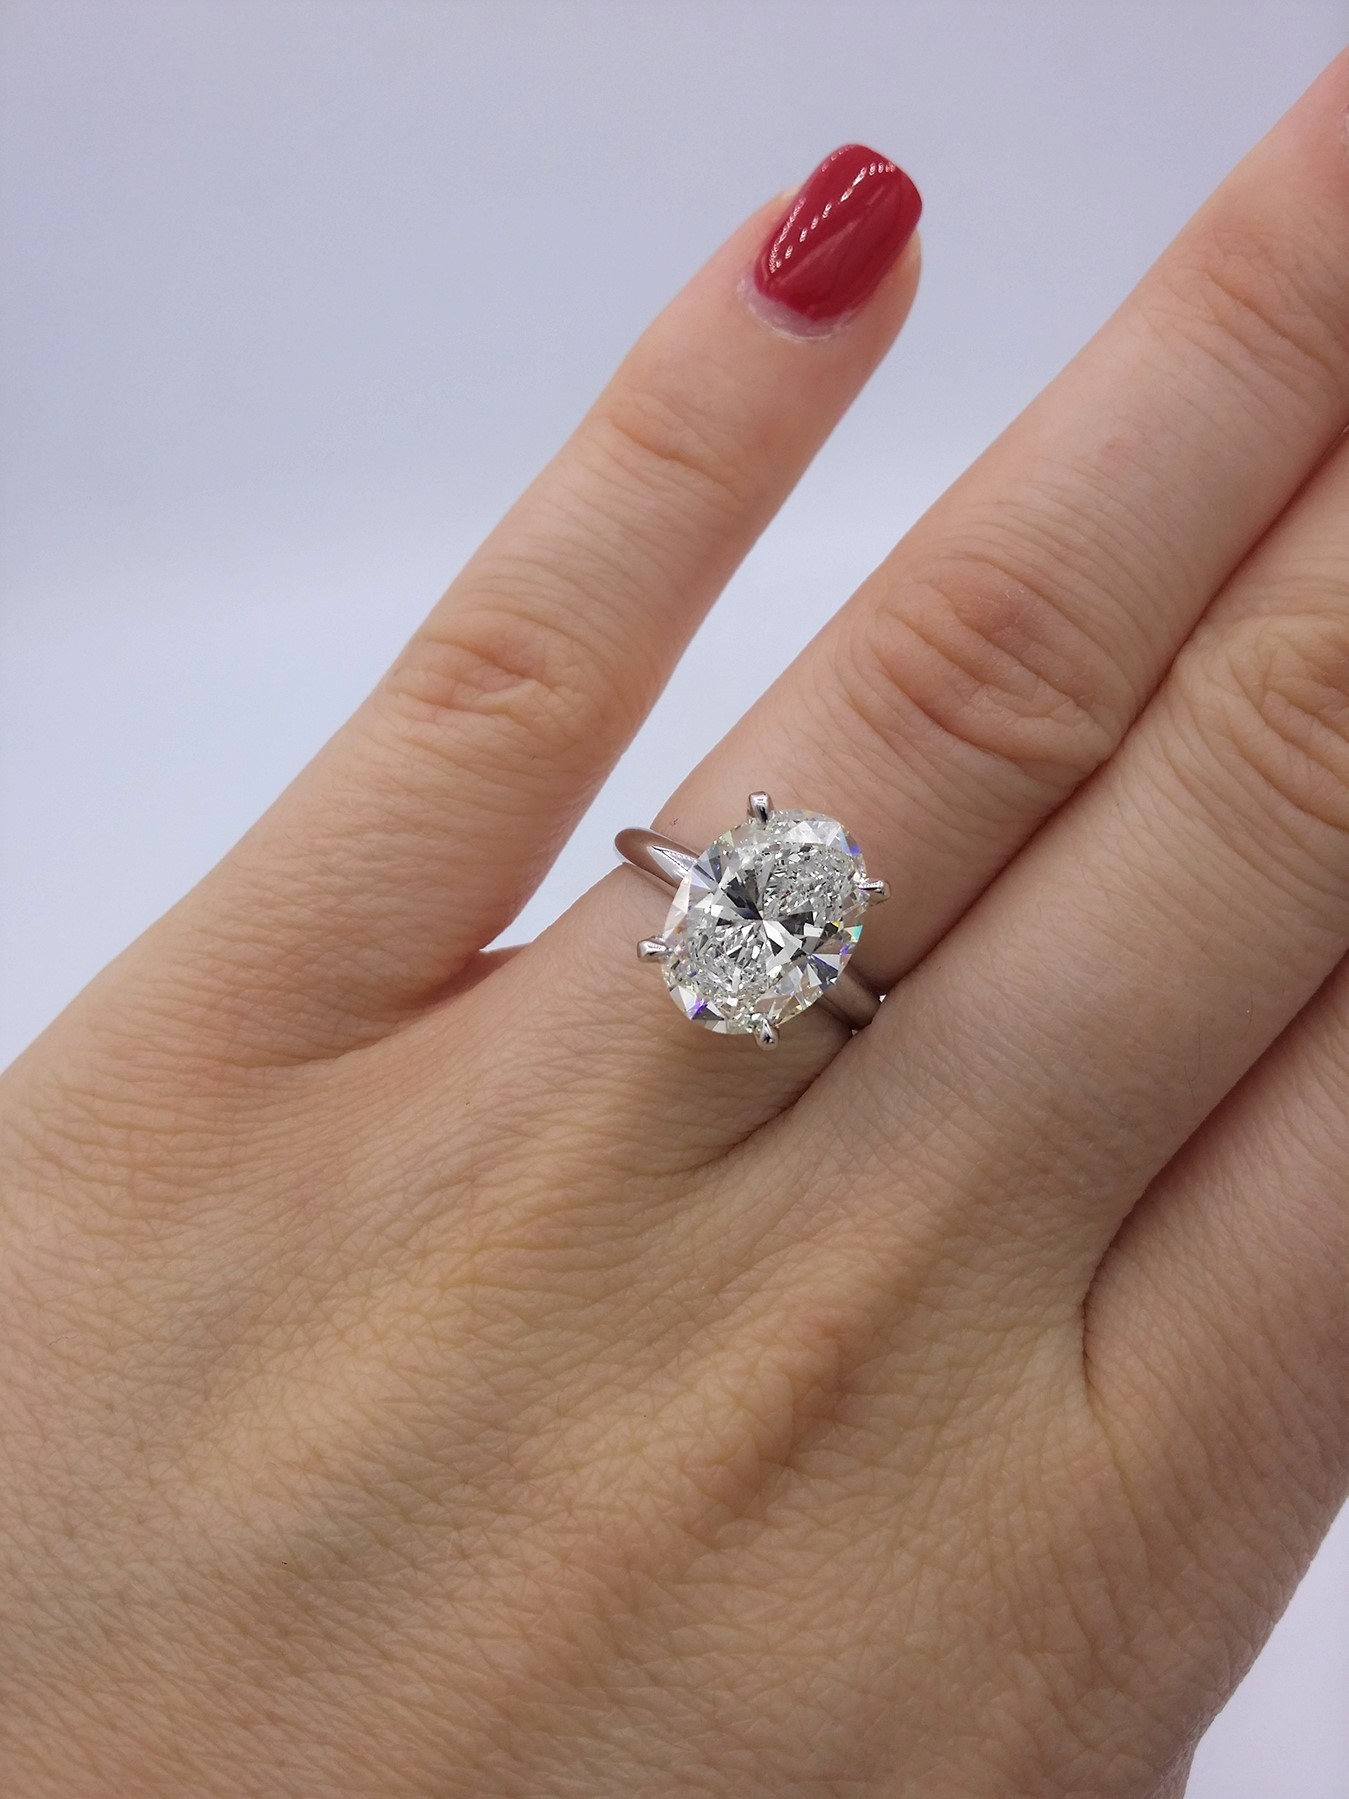 Magnificent GIA certified 3.07 cts oval cut diamond ring